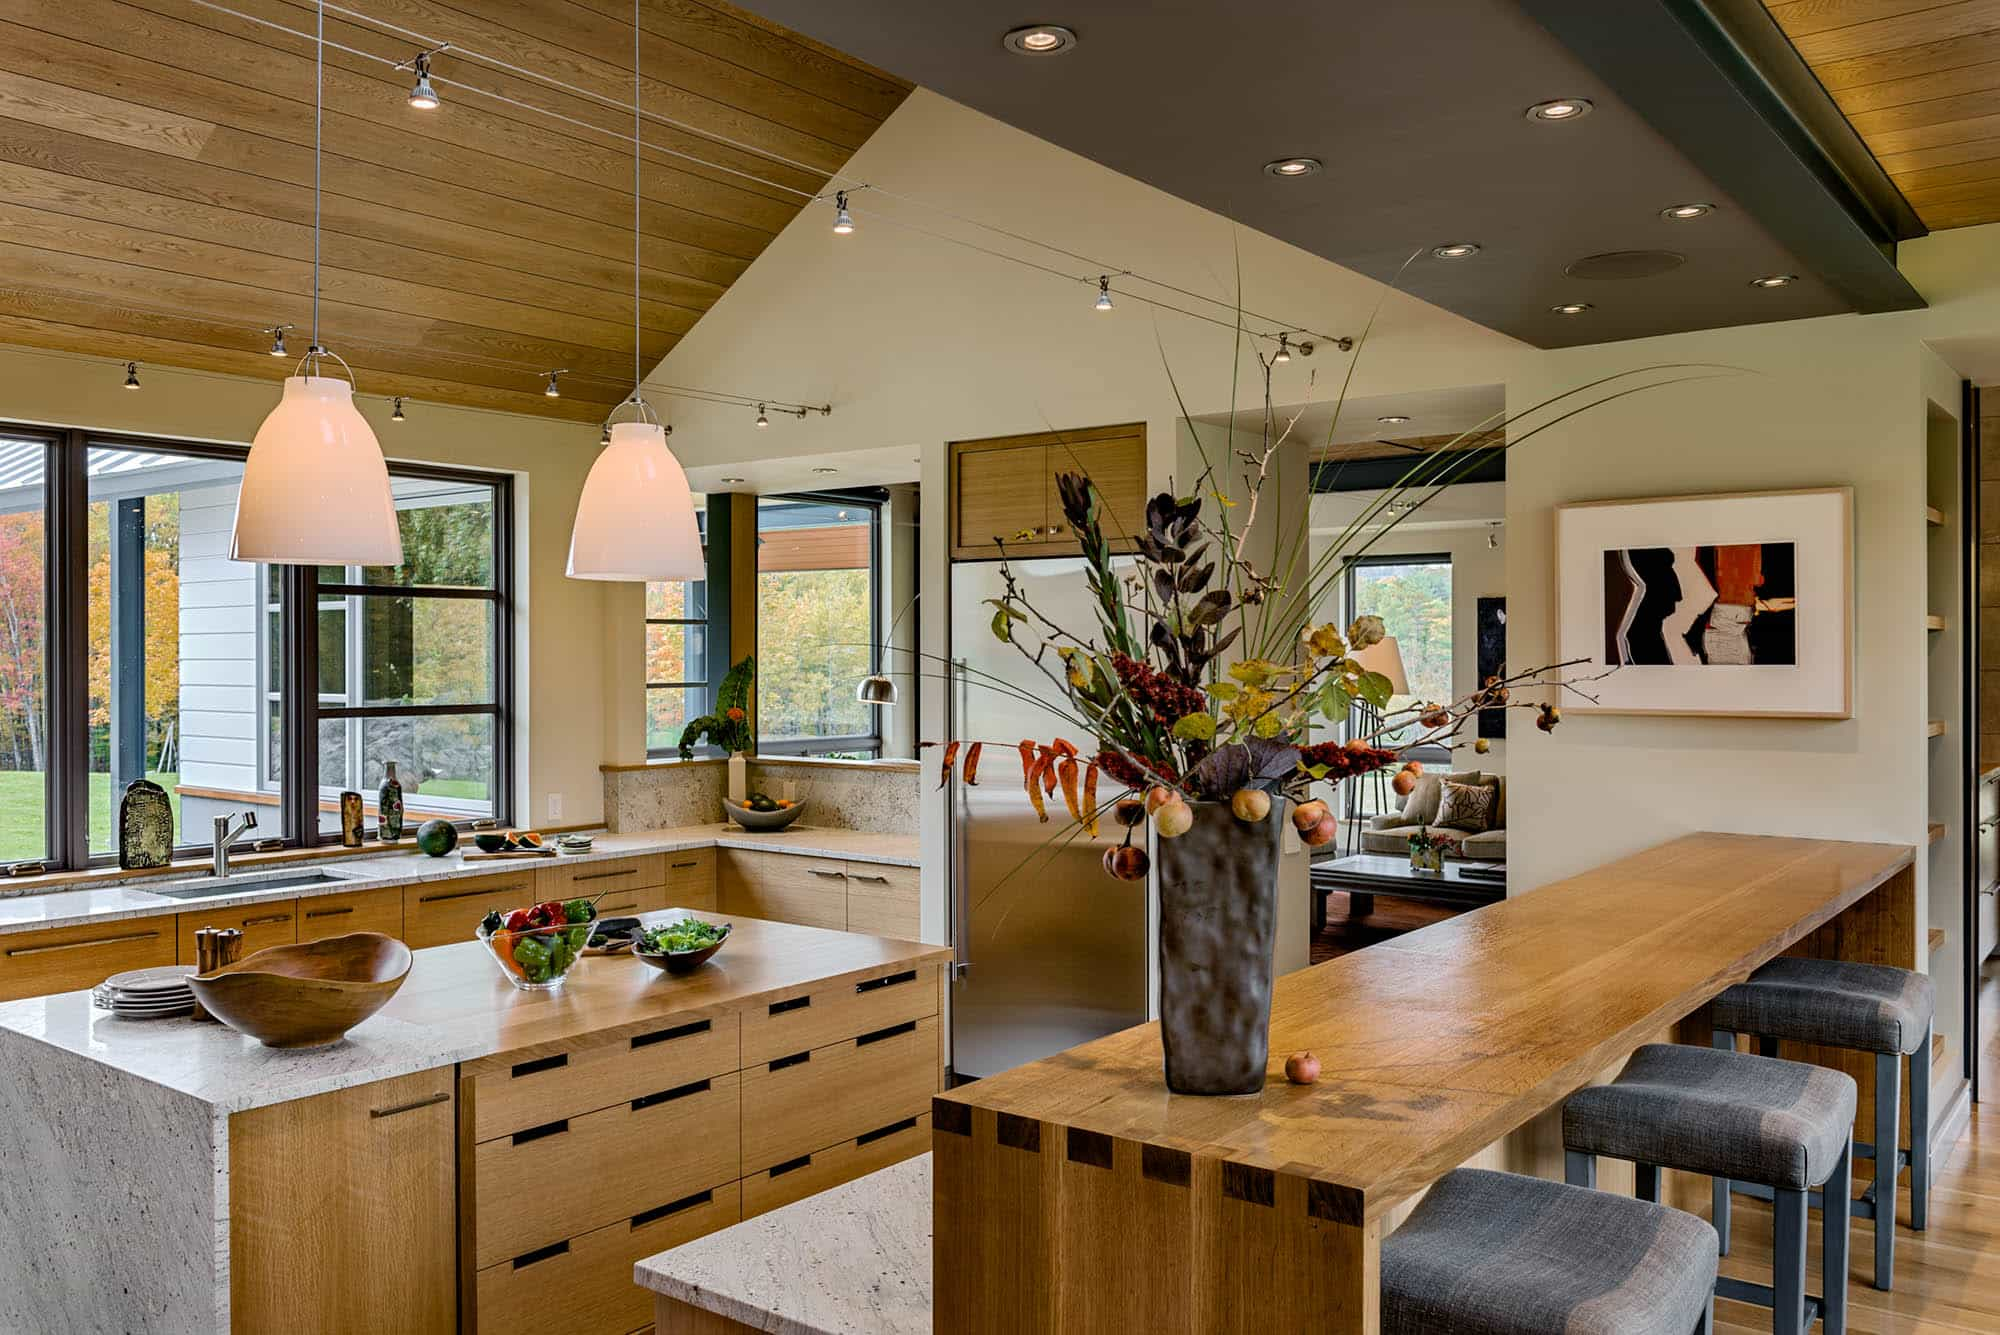 Modern Pole Barn Home - TAG Level & The Pole Barn Home - An Unique and Affordable Home Idea